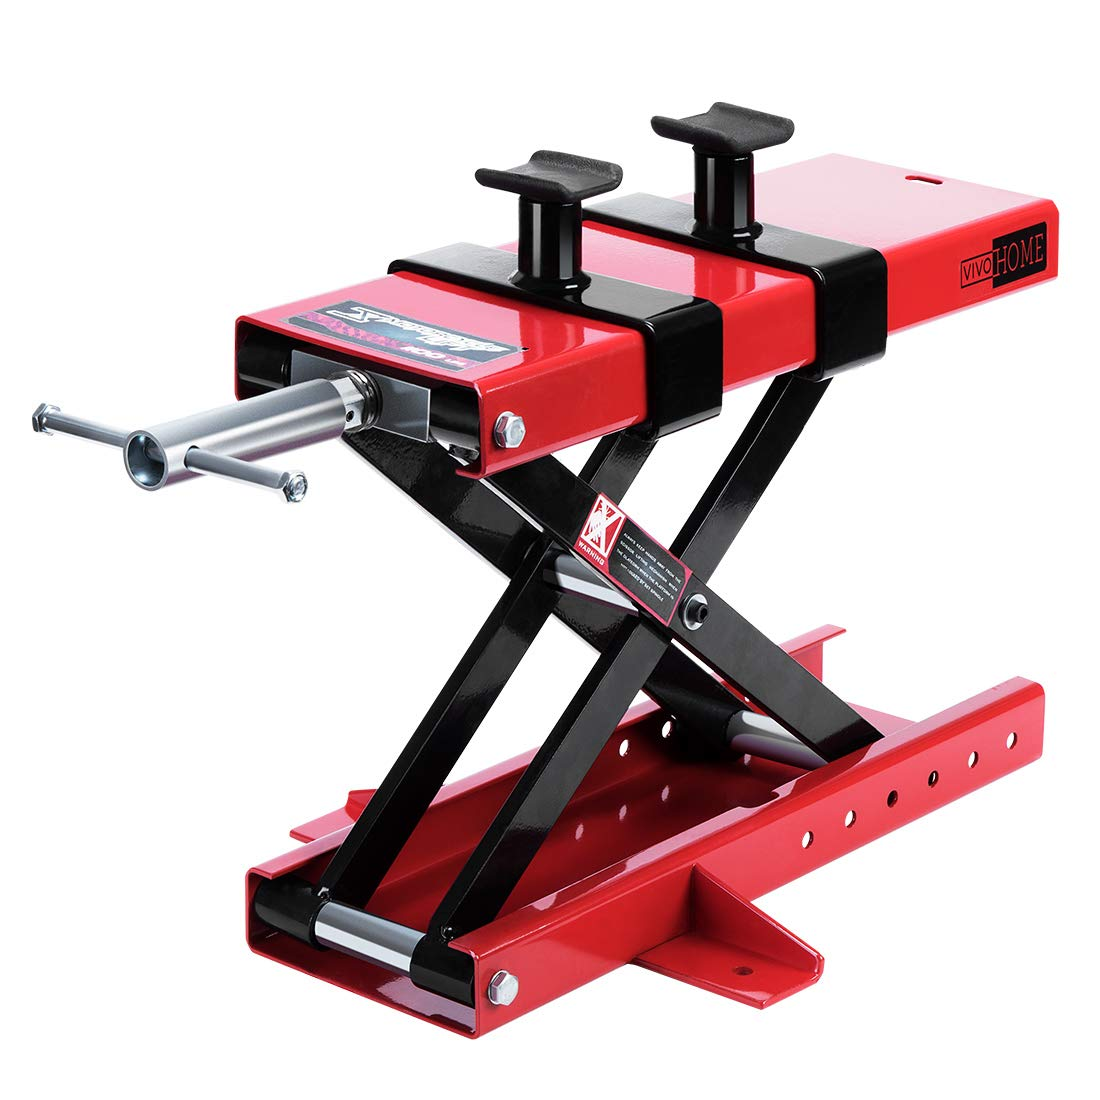 VIVOHOME Steel Motorcycle ATV Scissor Lift Jack Crank Hoist Stand with Saddle and Safety Pins 1100 lbs by VIVOHOME